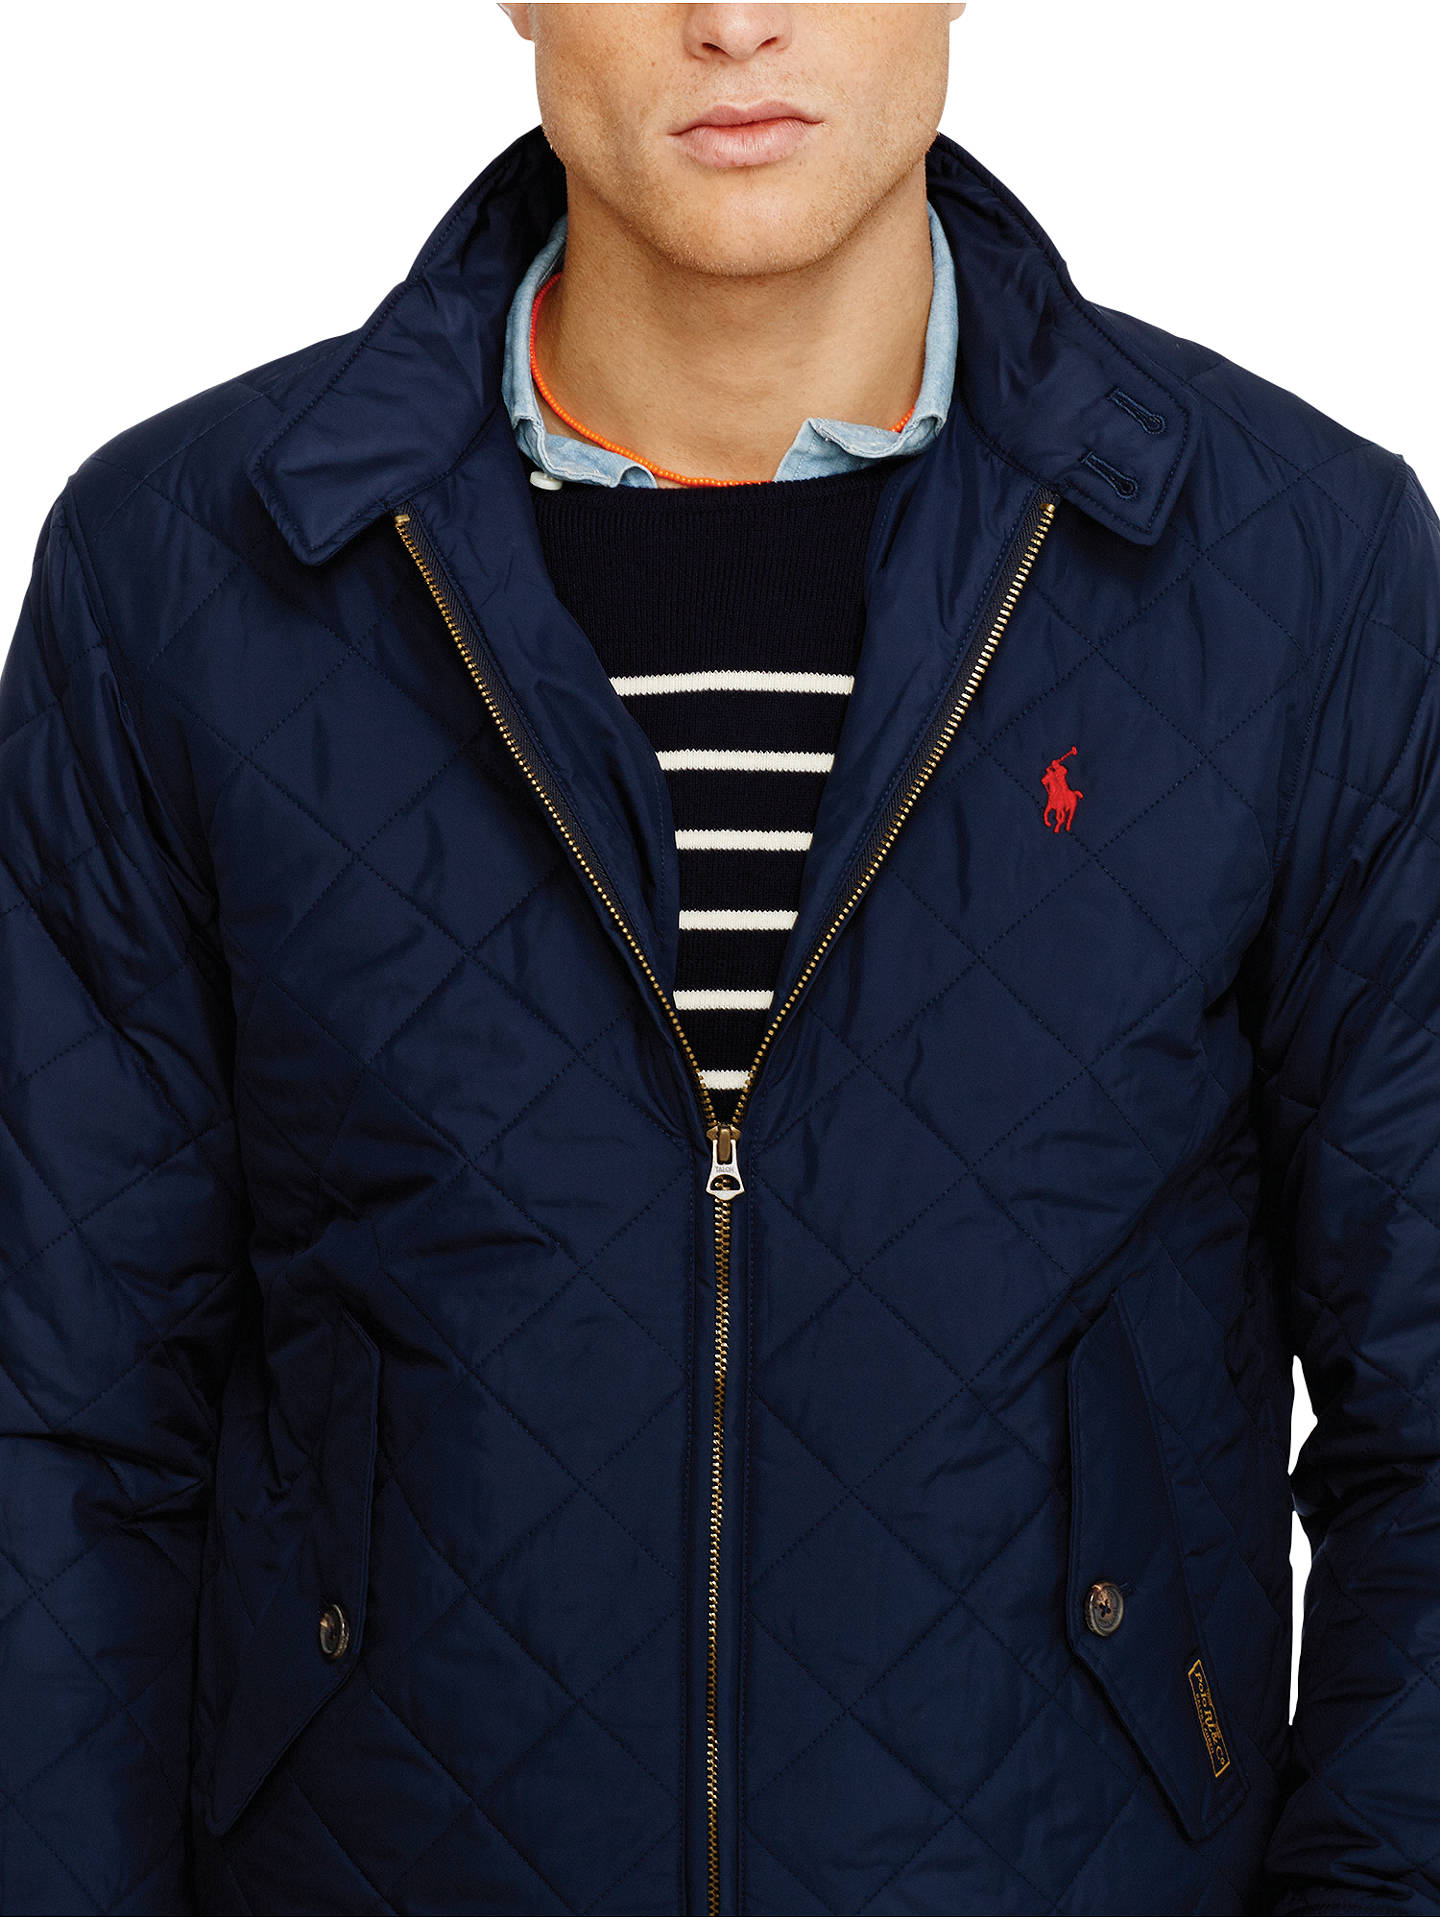 4f75e2a8 Buy Polo Ralph Lauren Quilted Barracuda Jacket, Navy, M Online at  johnlewis.com ...